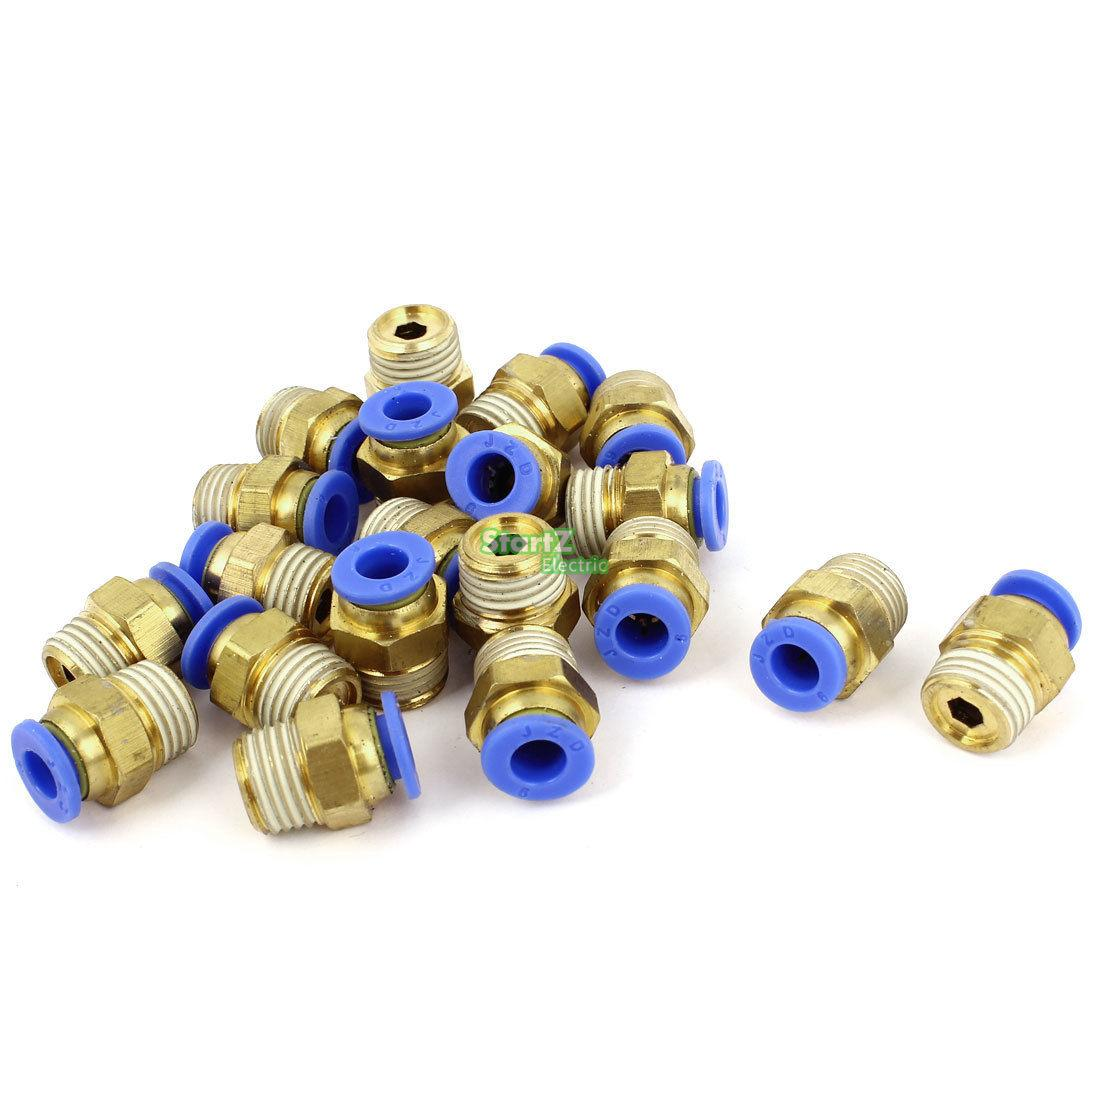 6mm Tube 1/4BSP Male Thread Quick Connector Pneumatic Air Fittings 20 Pcs free shipping 10pcs 1 8 male thread to 6mm elbow pneumatic connector fittings pl6 01 white